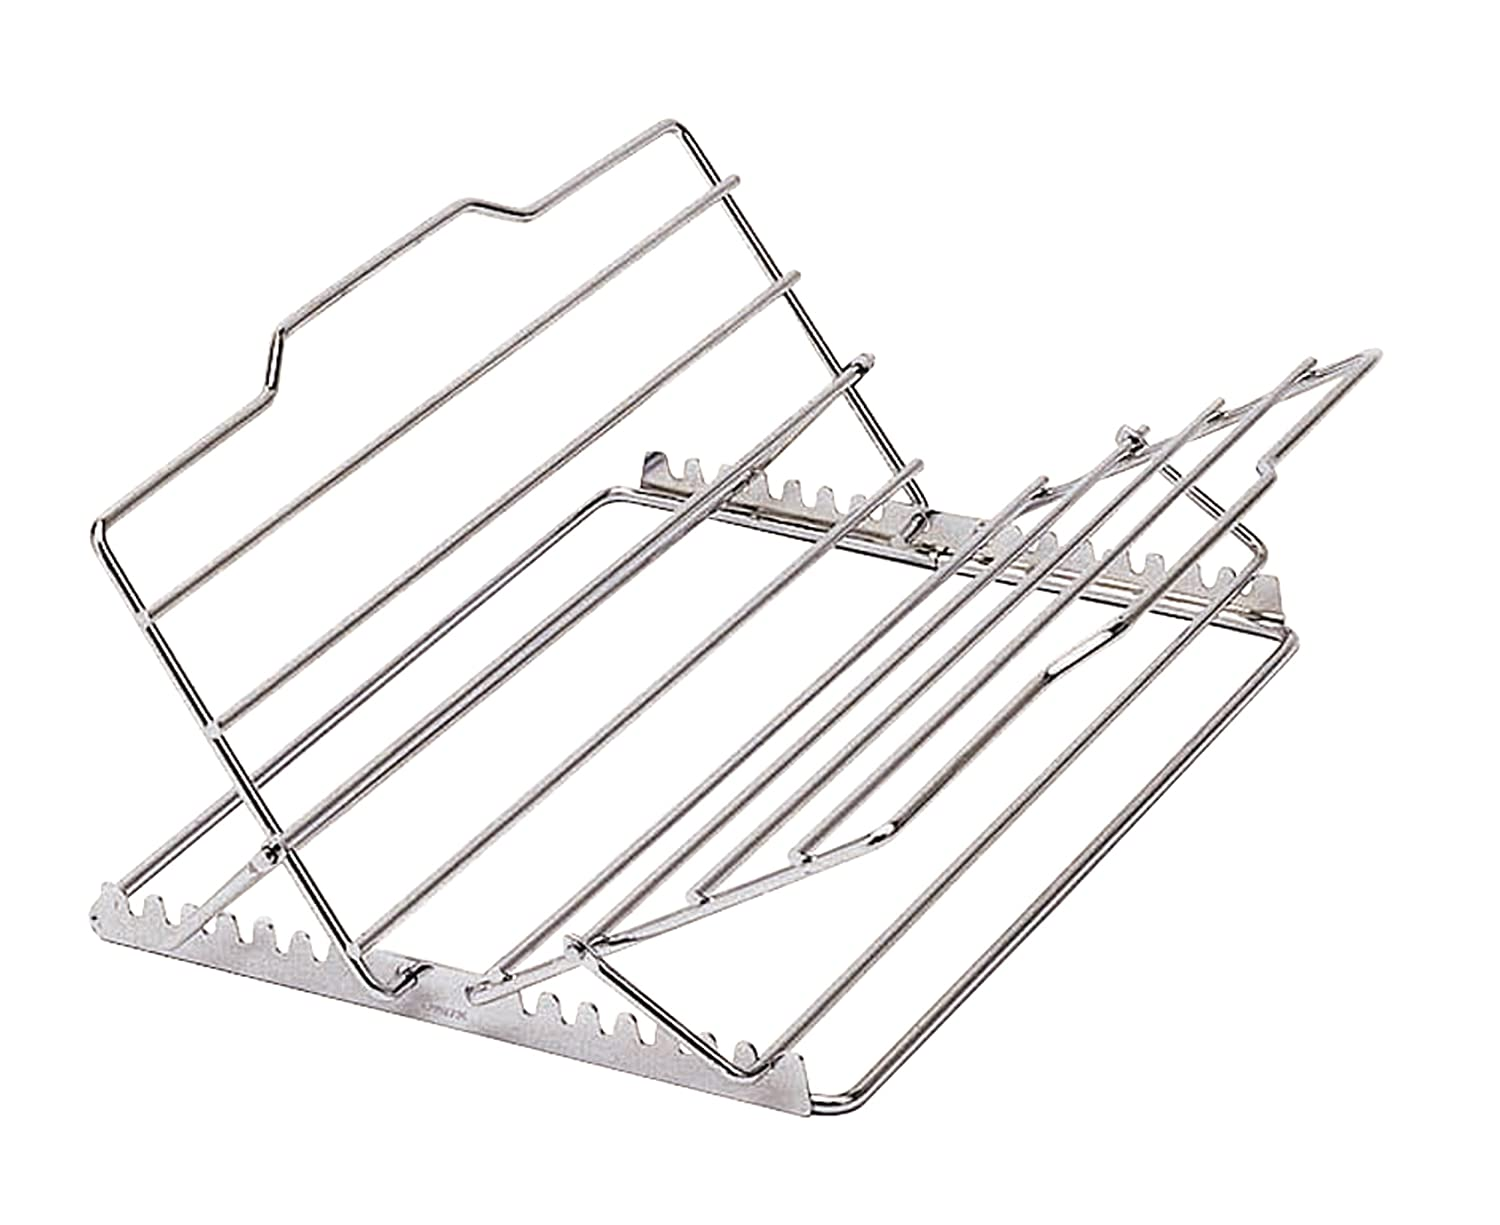 "KitchenCraft Chrome-Plated Adjustable Roasting Rack, 29 x 23 x 9 cm (11.5"" x 9"" x 3.5"") Brandcentre Kitchen Craft KCADJRACK"